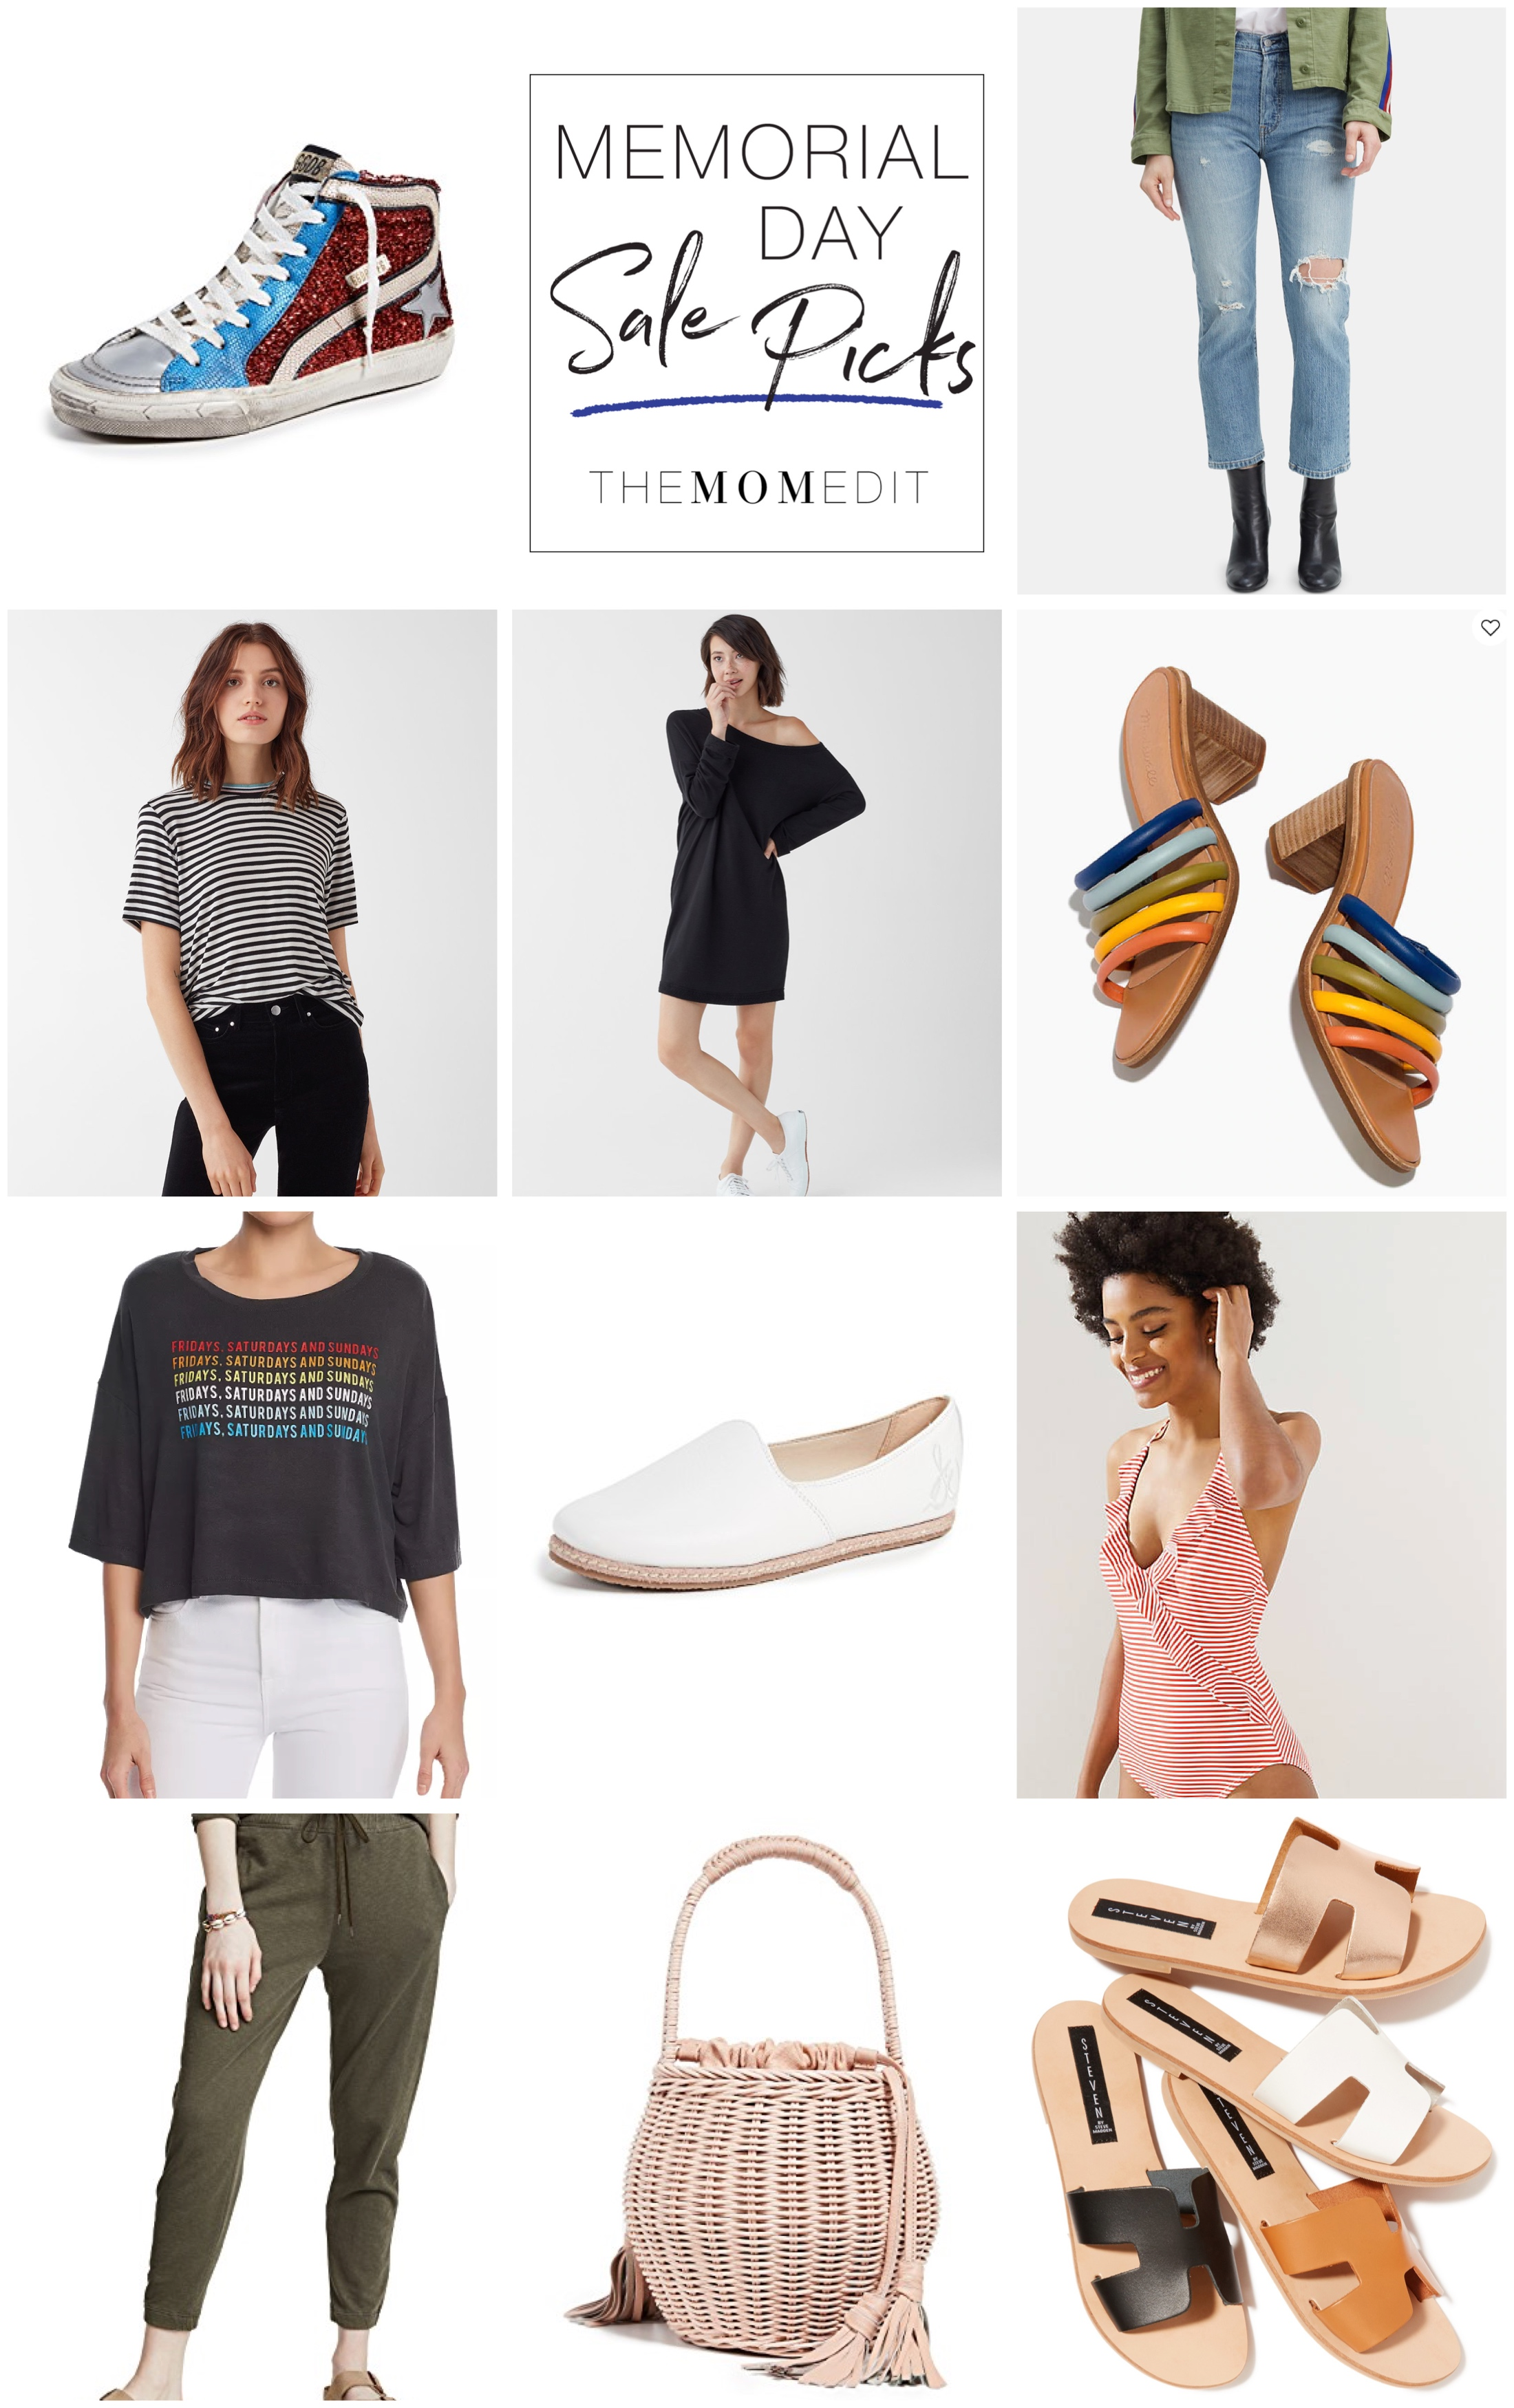 17b5b65a Laura's Memorial Day Sale Picks: Casual Go-Tos For Everyday | The ...